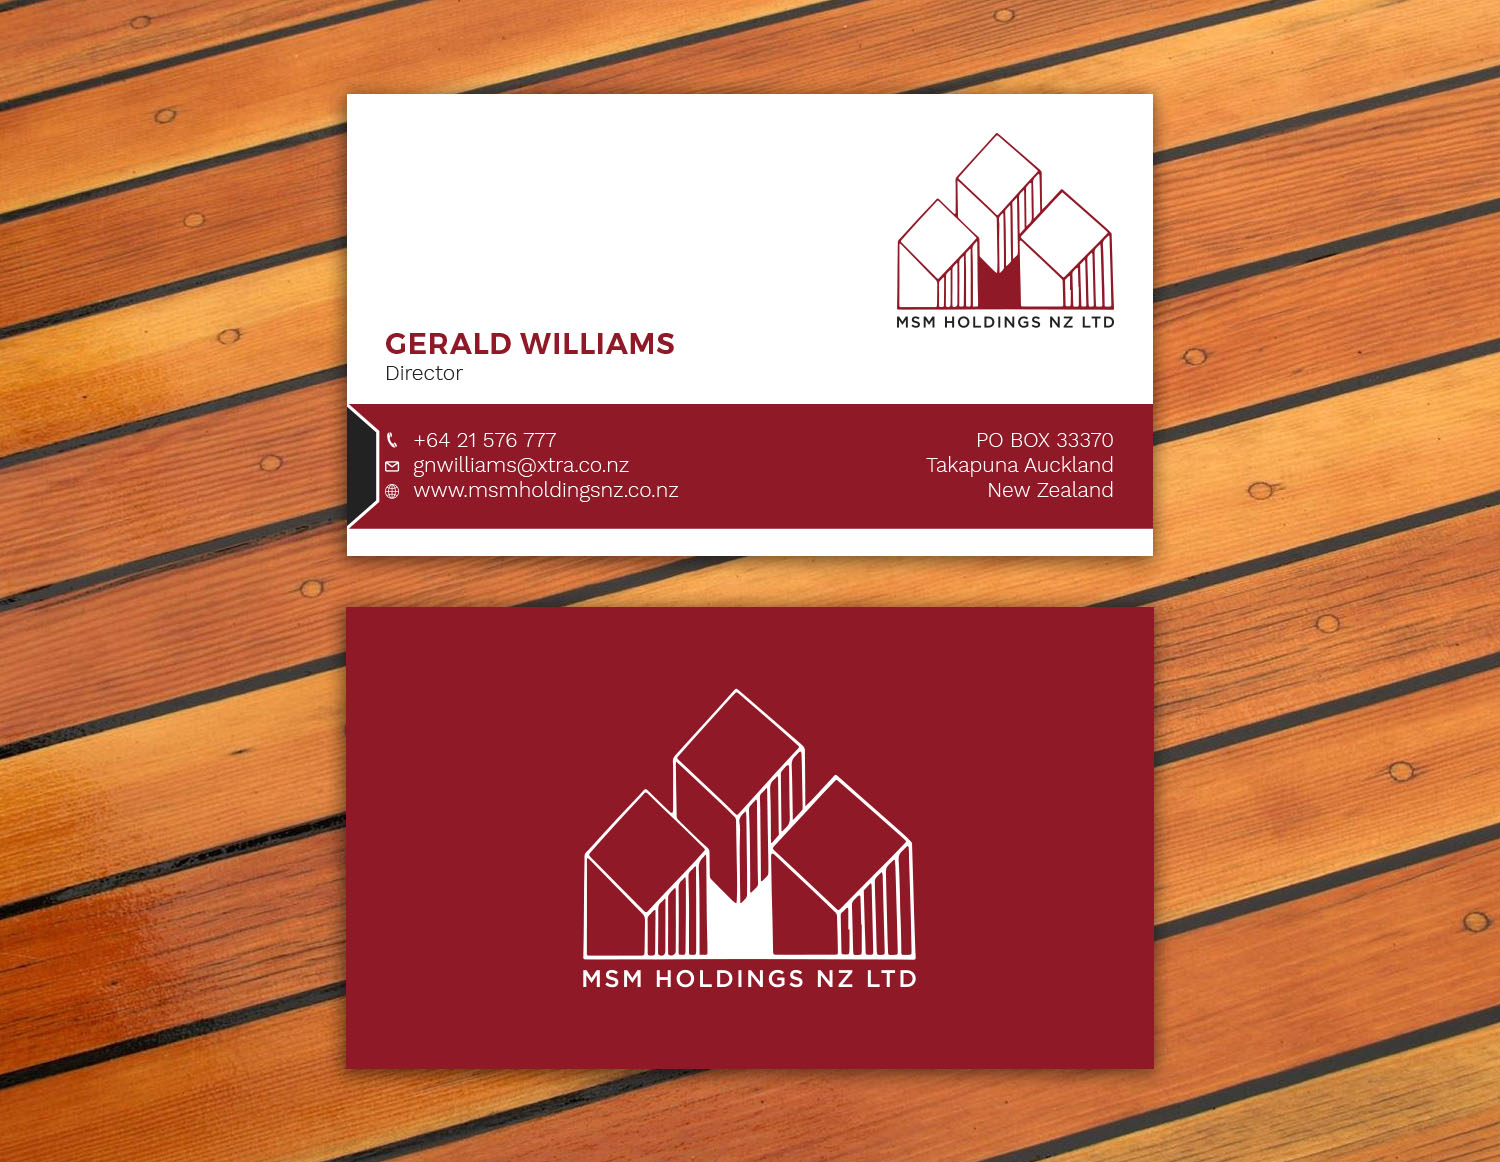 Wooden business cards nz image collections card design and card upmarket serious business card design for roar honey nz limited by business card design by avanger000 reheart Image collections